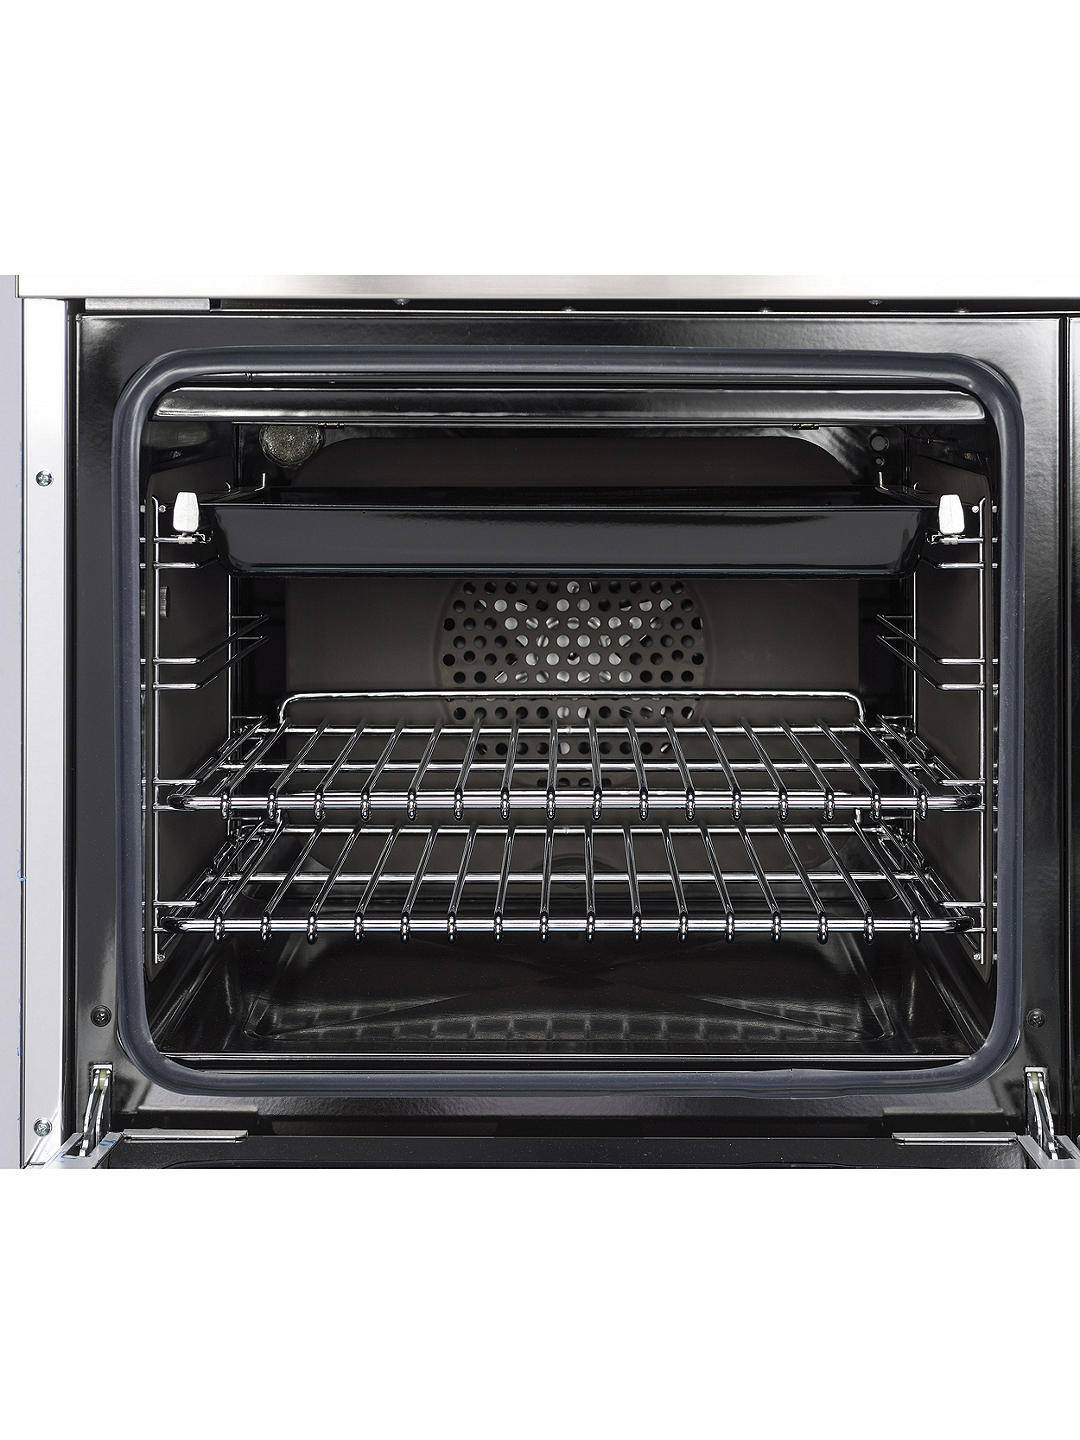 Buy Britannia RC-9TG-DE-K Delphi Dual Fuel Range Cooker, Black Online at johnlewis.com